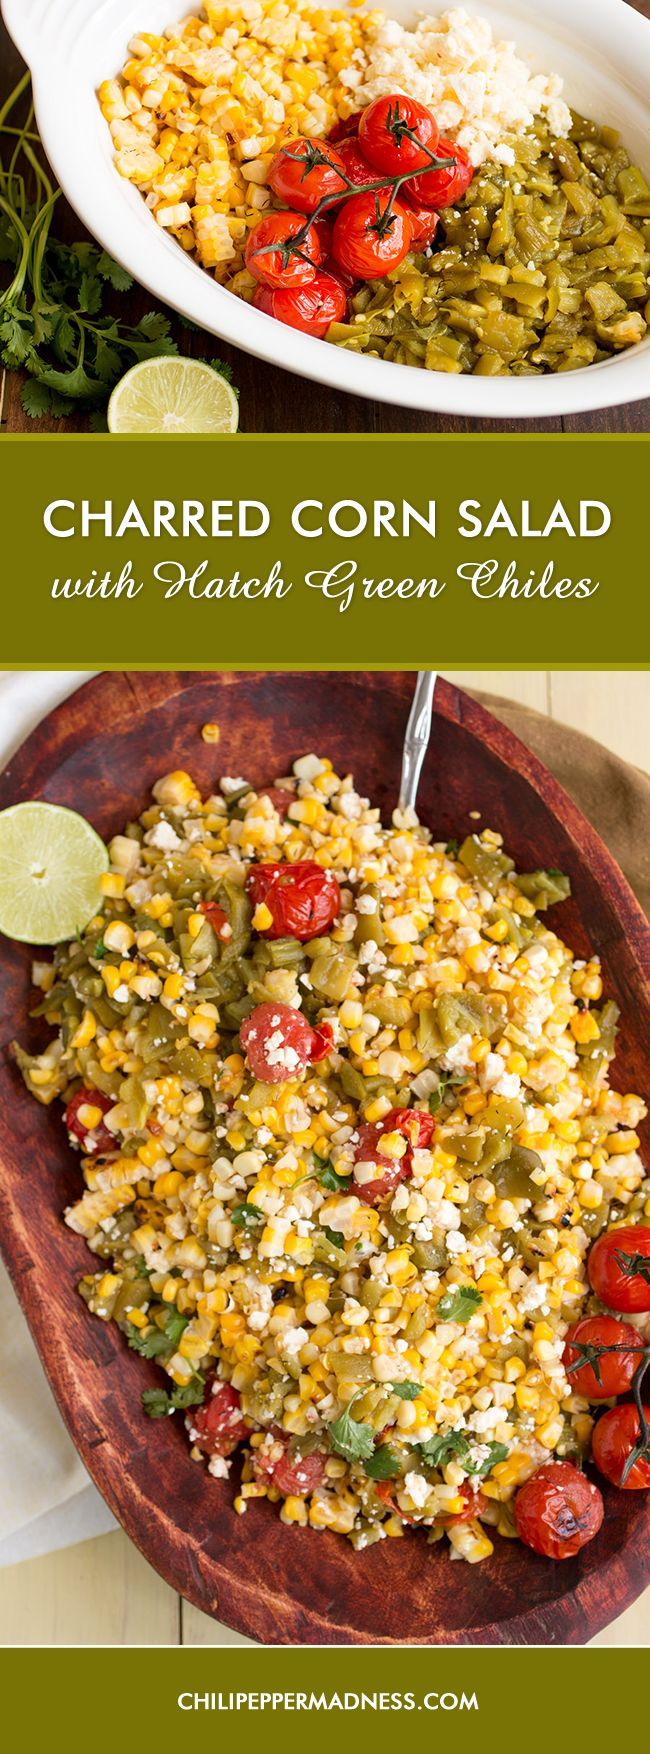 A bright summer corn salad made with charred corn, blistered cherry tomatoes, Hatch green chiles direct from New Mexico,  and crumbled cotija cheese. It's time to fire up the grill!